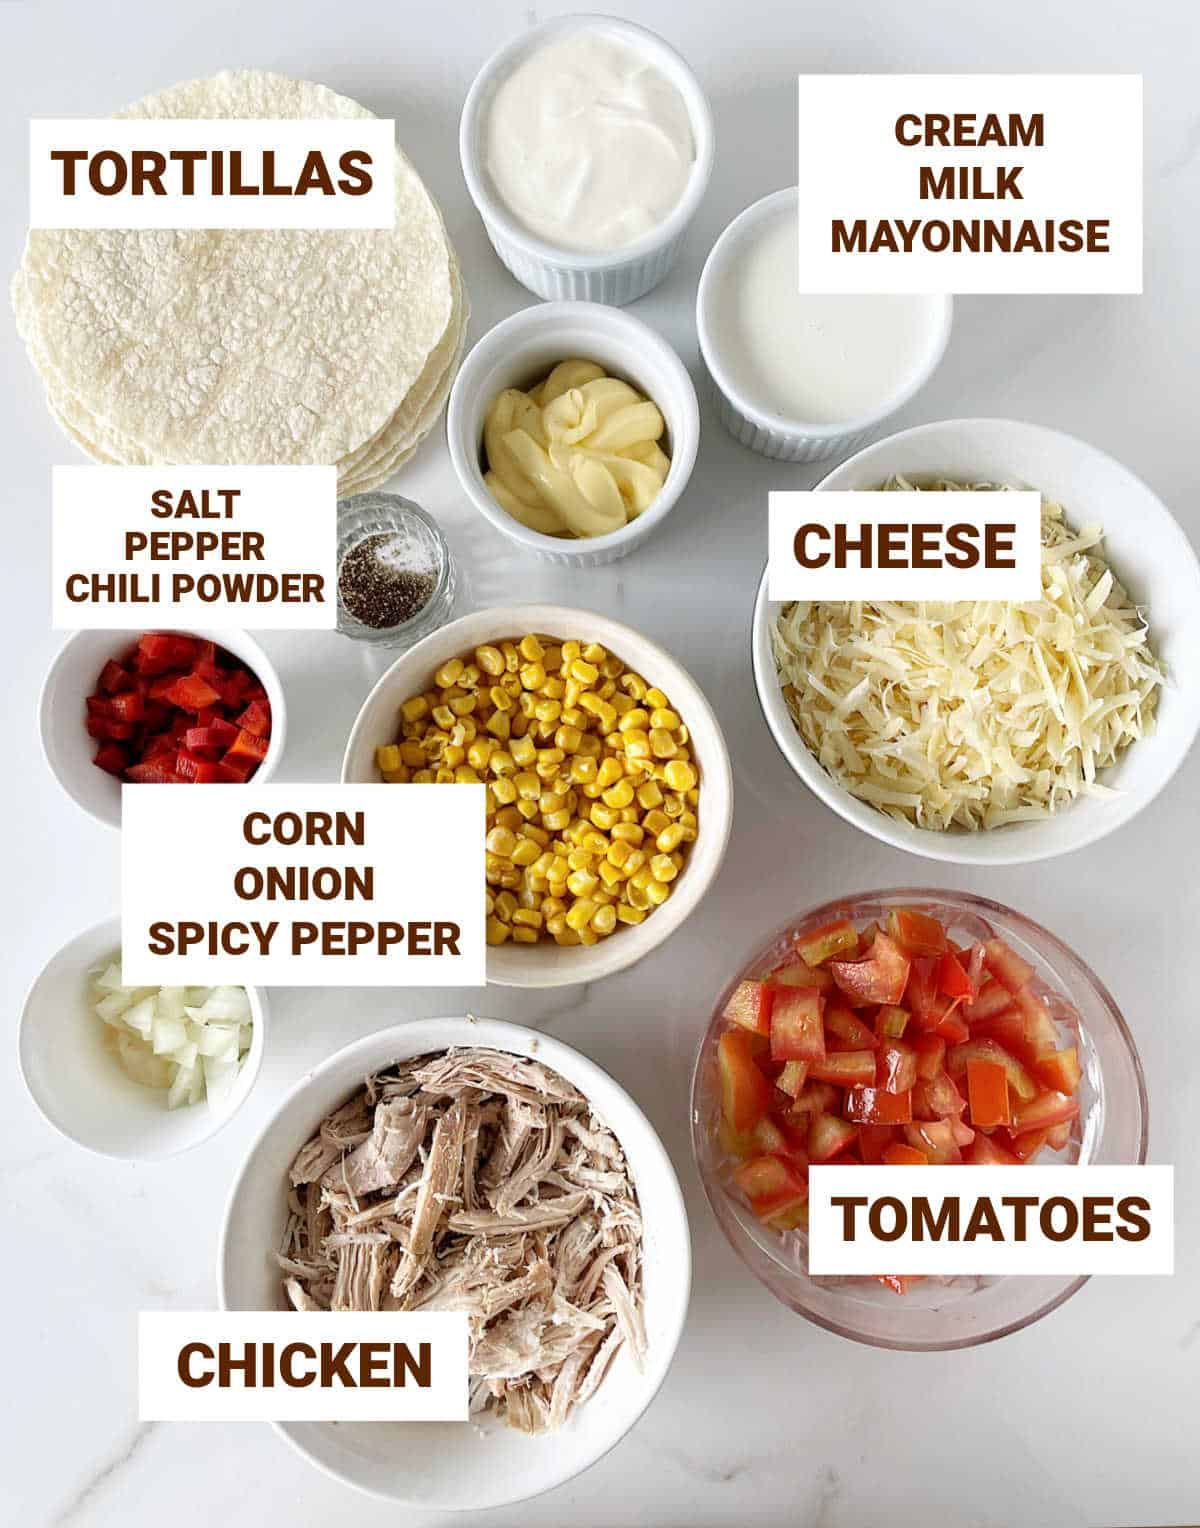 Bowls on white surface with ingredients for chicken corn casserole including tortillas, cheese, tomatoes, condiments